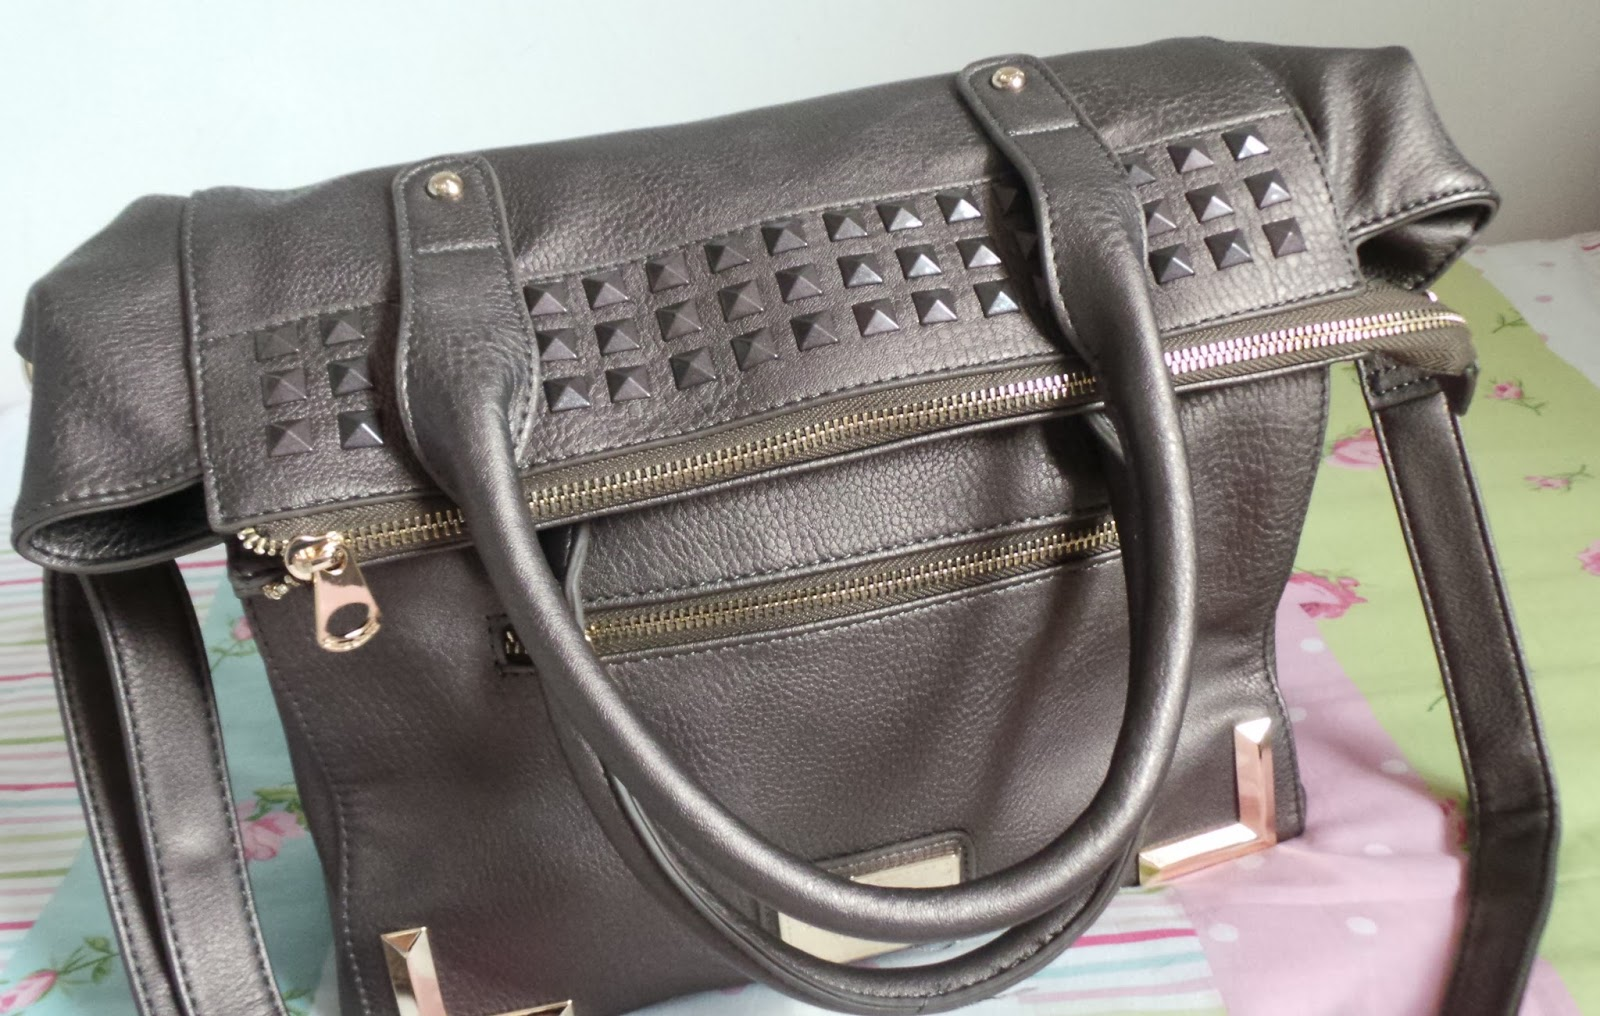 whats in my handbag, whats in my bag post, whats in my handbag blog, handbag, LYDC, jules tote bag, jules tote bag by anna smith, LYDC jules tote bag, handbag review, handbag, fashion, fashion blogger, style, style blog, fblogger, uk fashion blog, uk style blog,